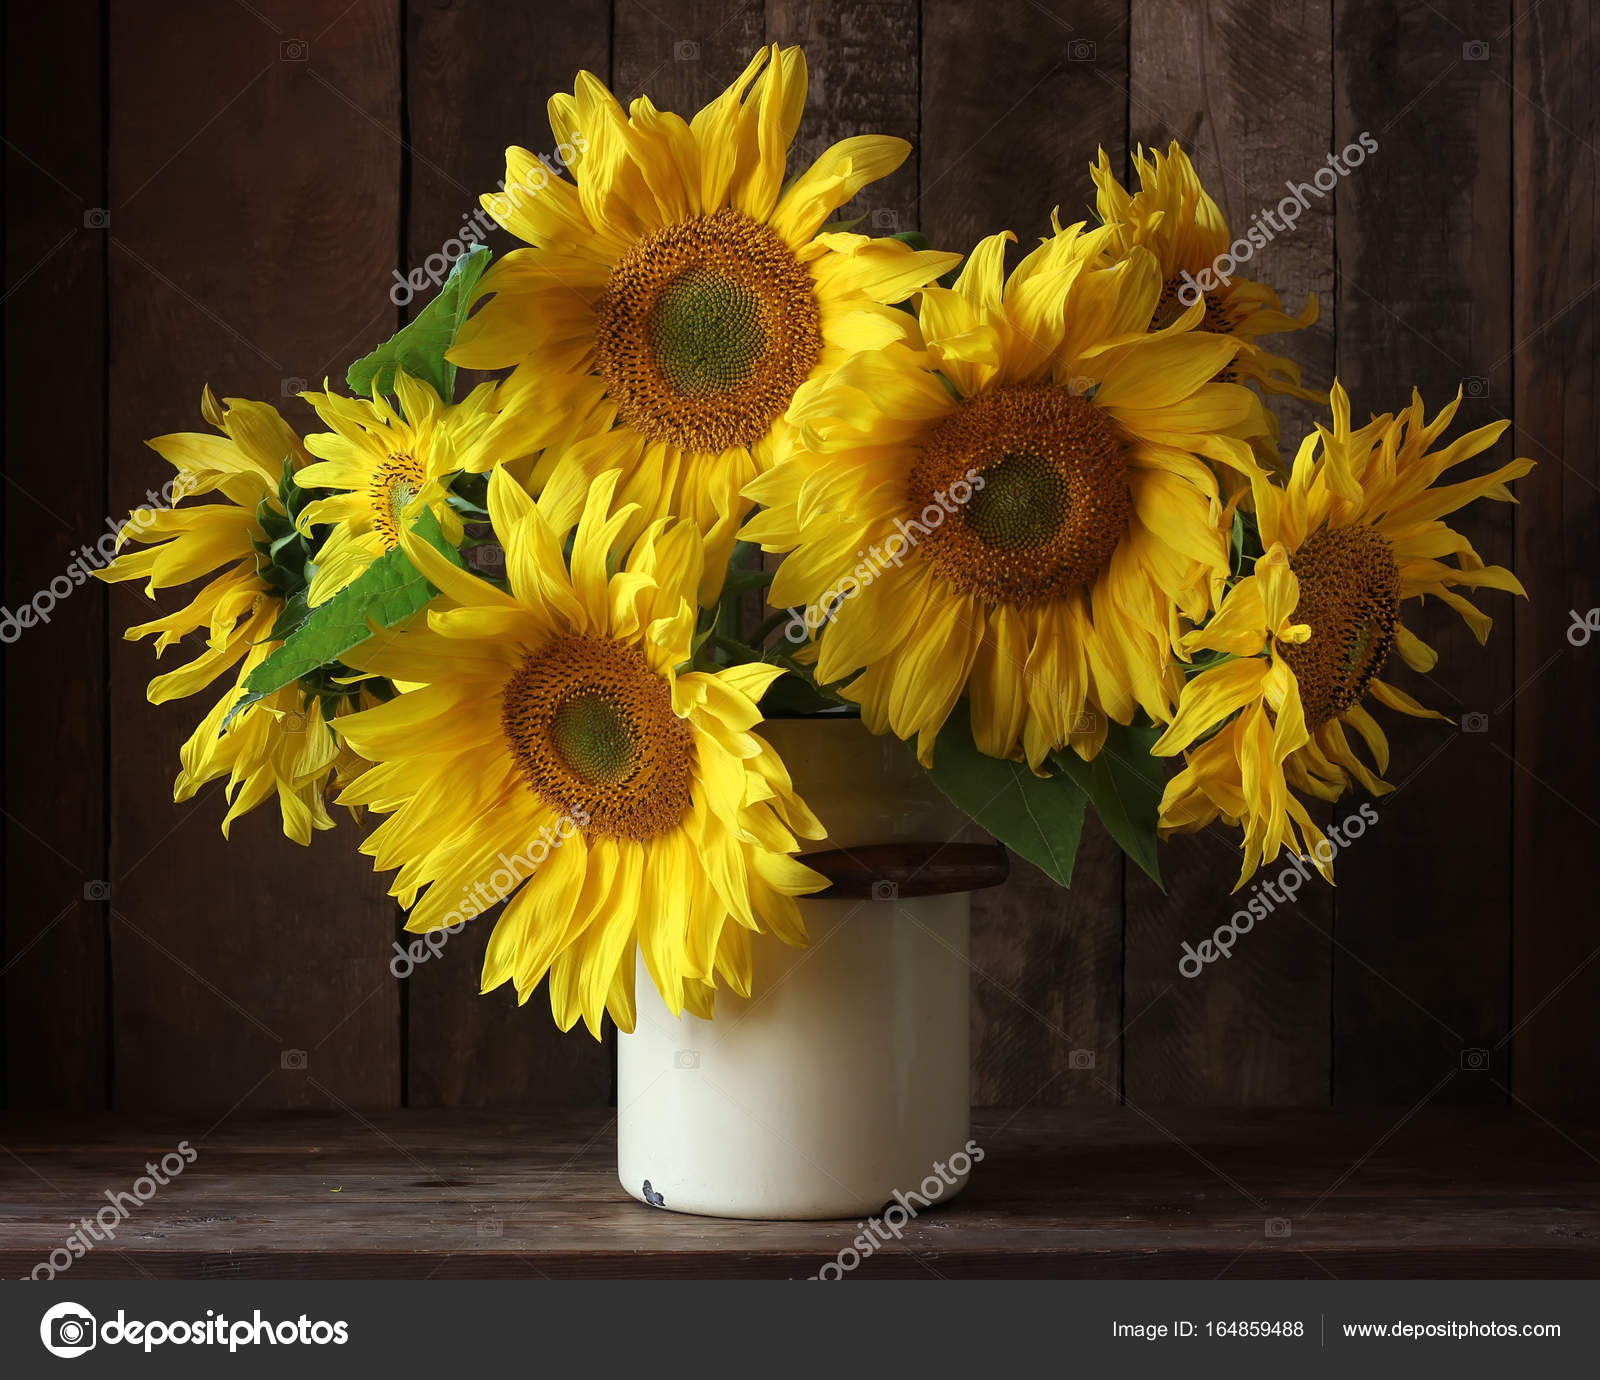 Bouquet Of Sunflowers In A Can On A Dark Background Stock Photo C Balagur 164859488